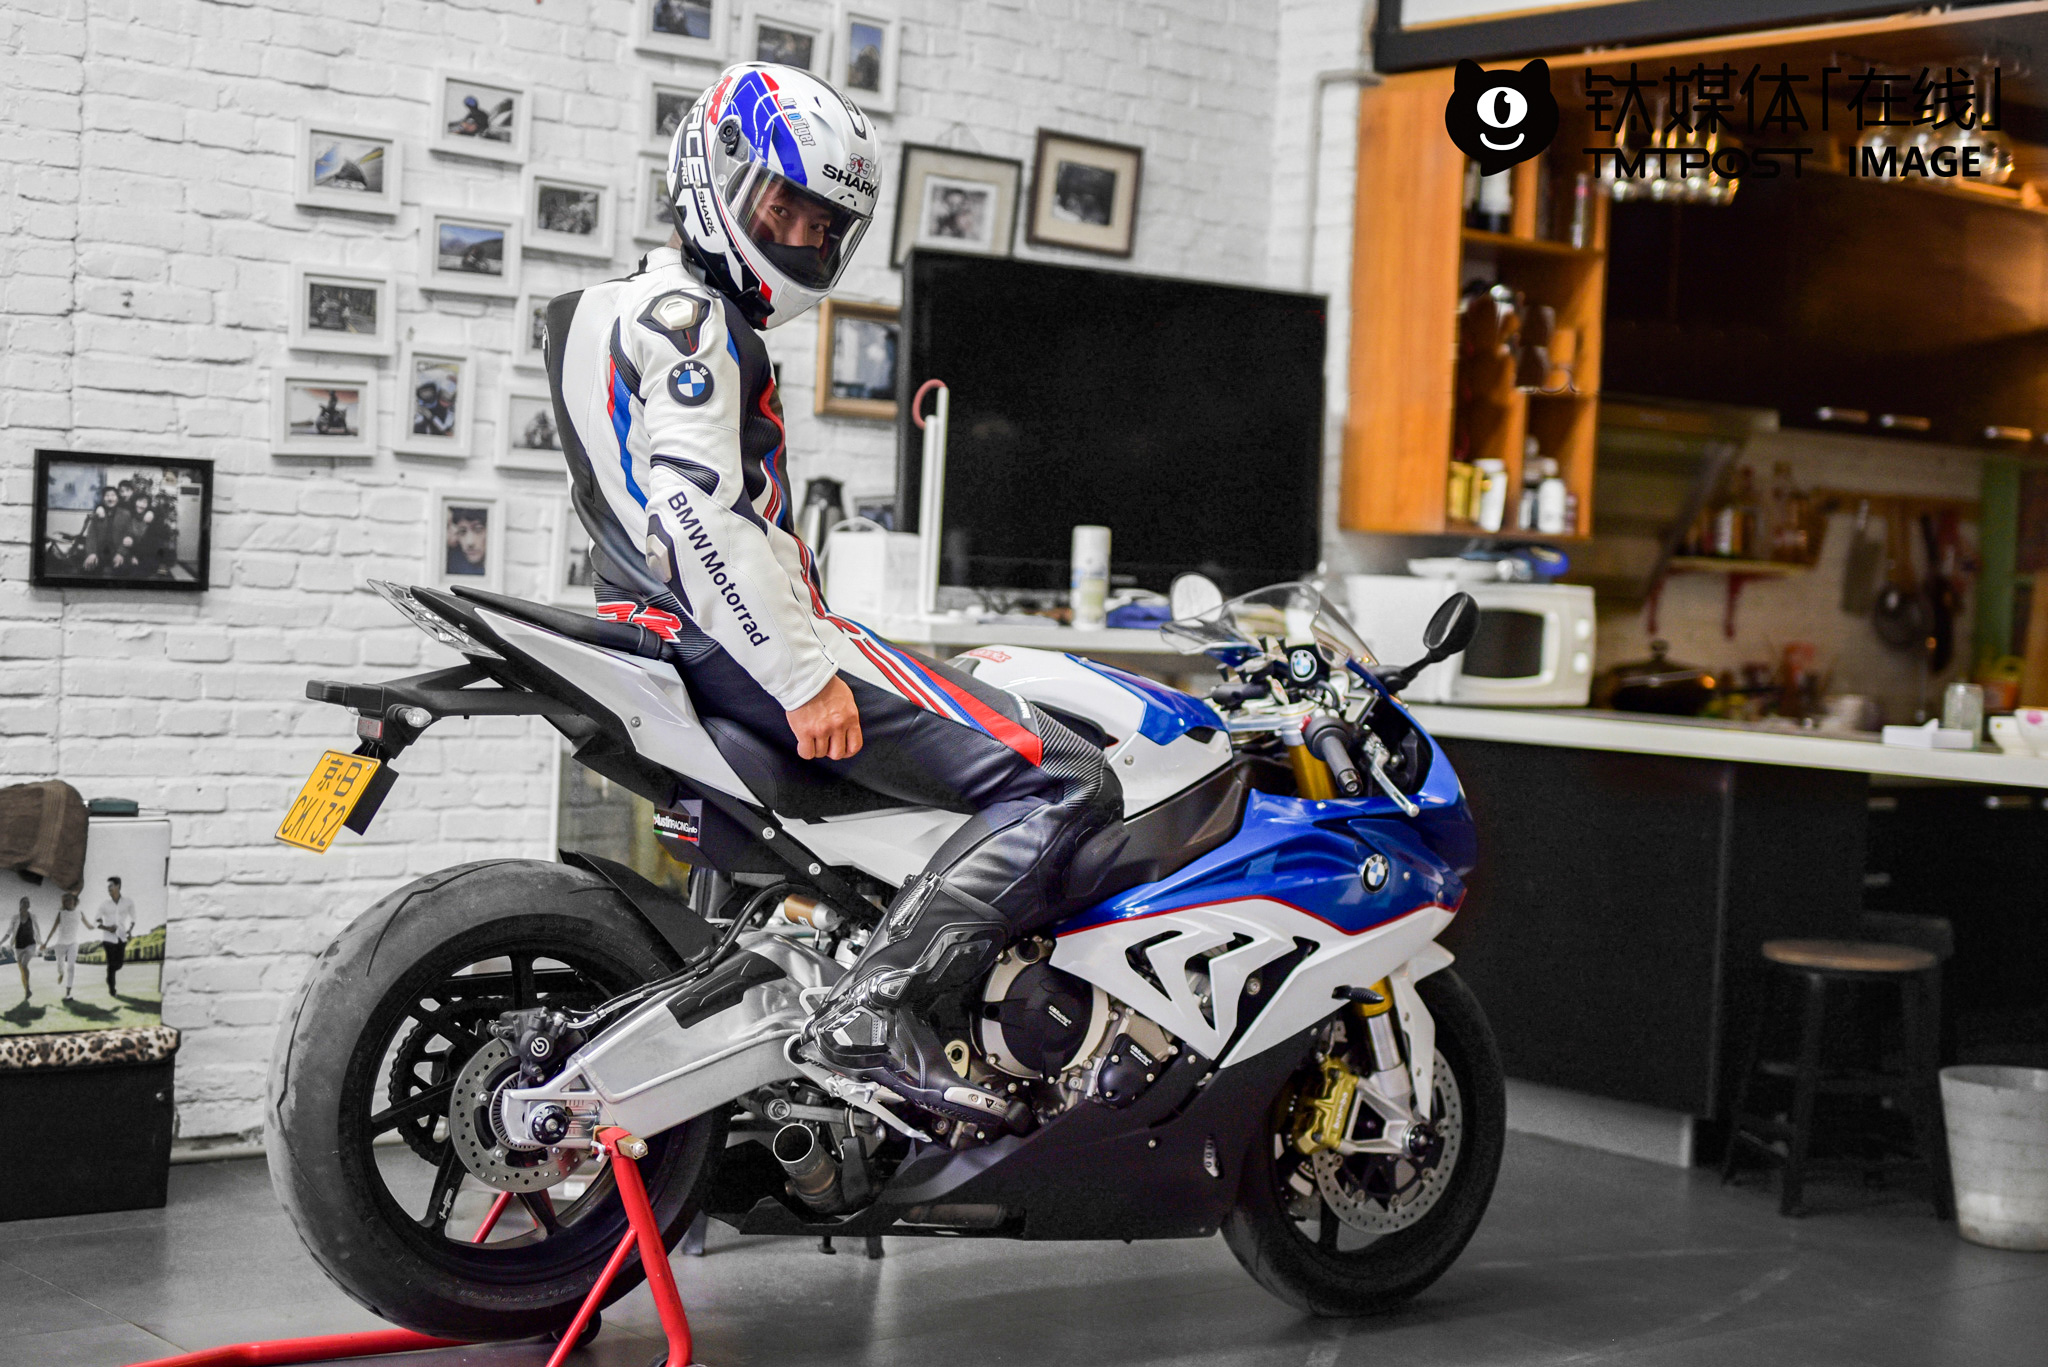 """He had two motorcycles, and both of them are worthy over 300,000 yuan (over $ 45,229). """"I also have a car, but when I really want to feel the wind, speed, I ride motorcycles. In leisure time, I also design and modify motorcycles. Besides, I am also a super fan of photography, but riding motorcycles is my lifetime hobby,"""" he told TMTpost."""